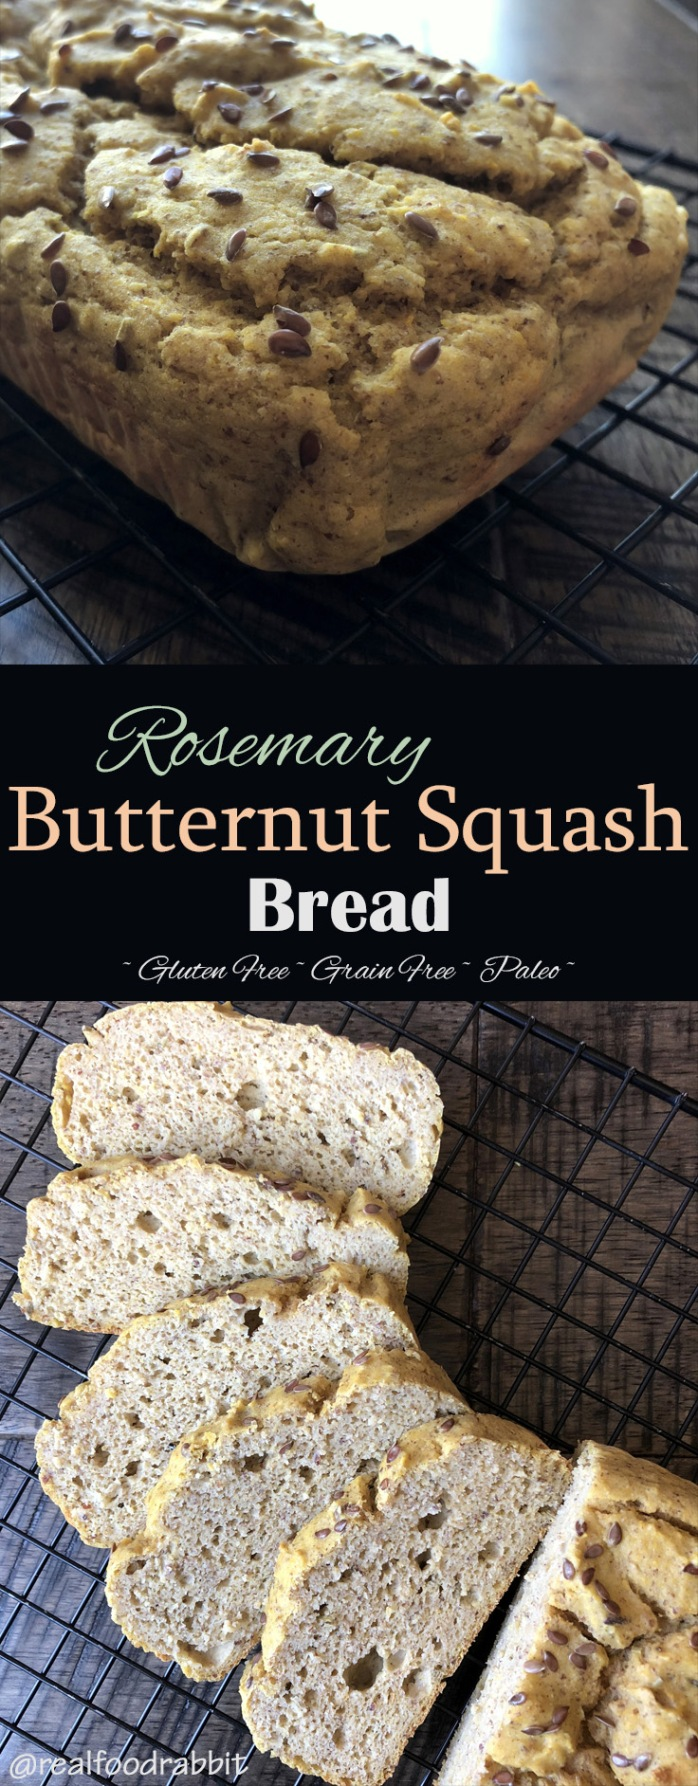 Butternut Bread.jpg